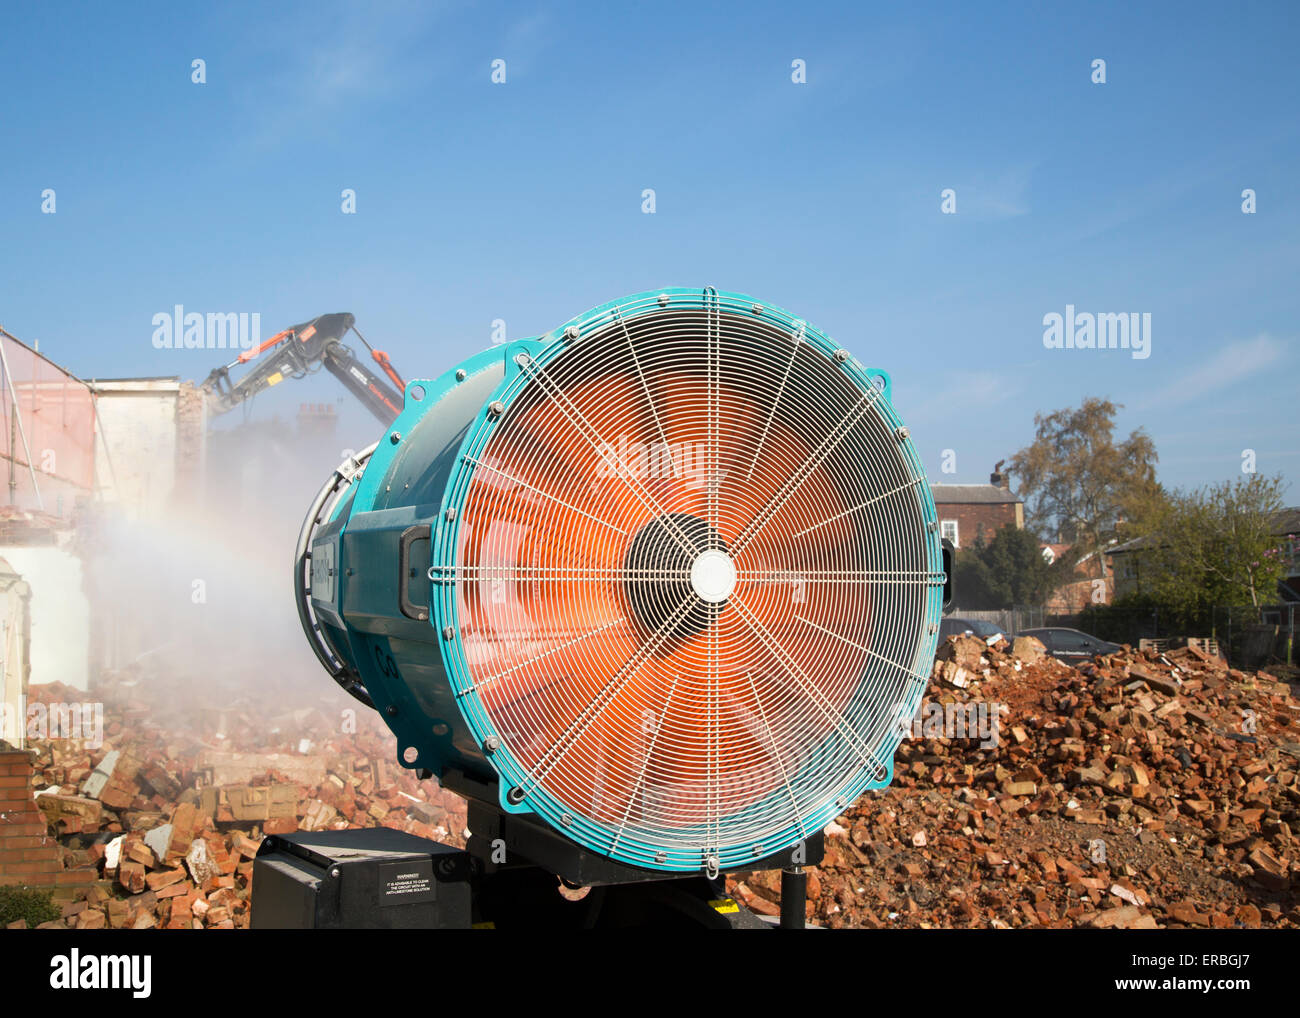 Water cannon spray to dampen dust at a demolition site, Woodbridge, Suffolk,  England, UK - Stock Image